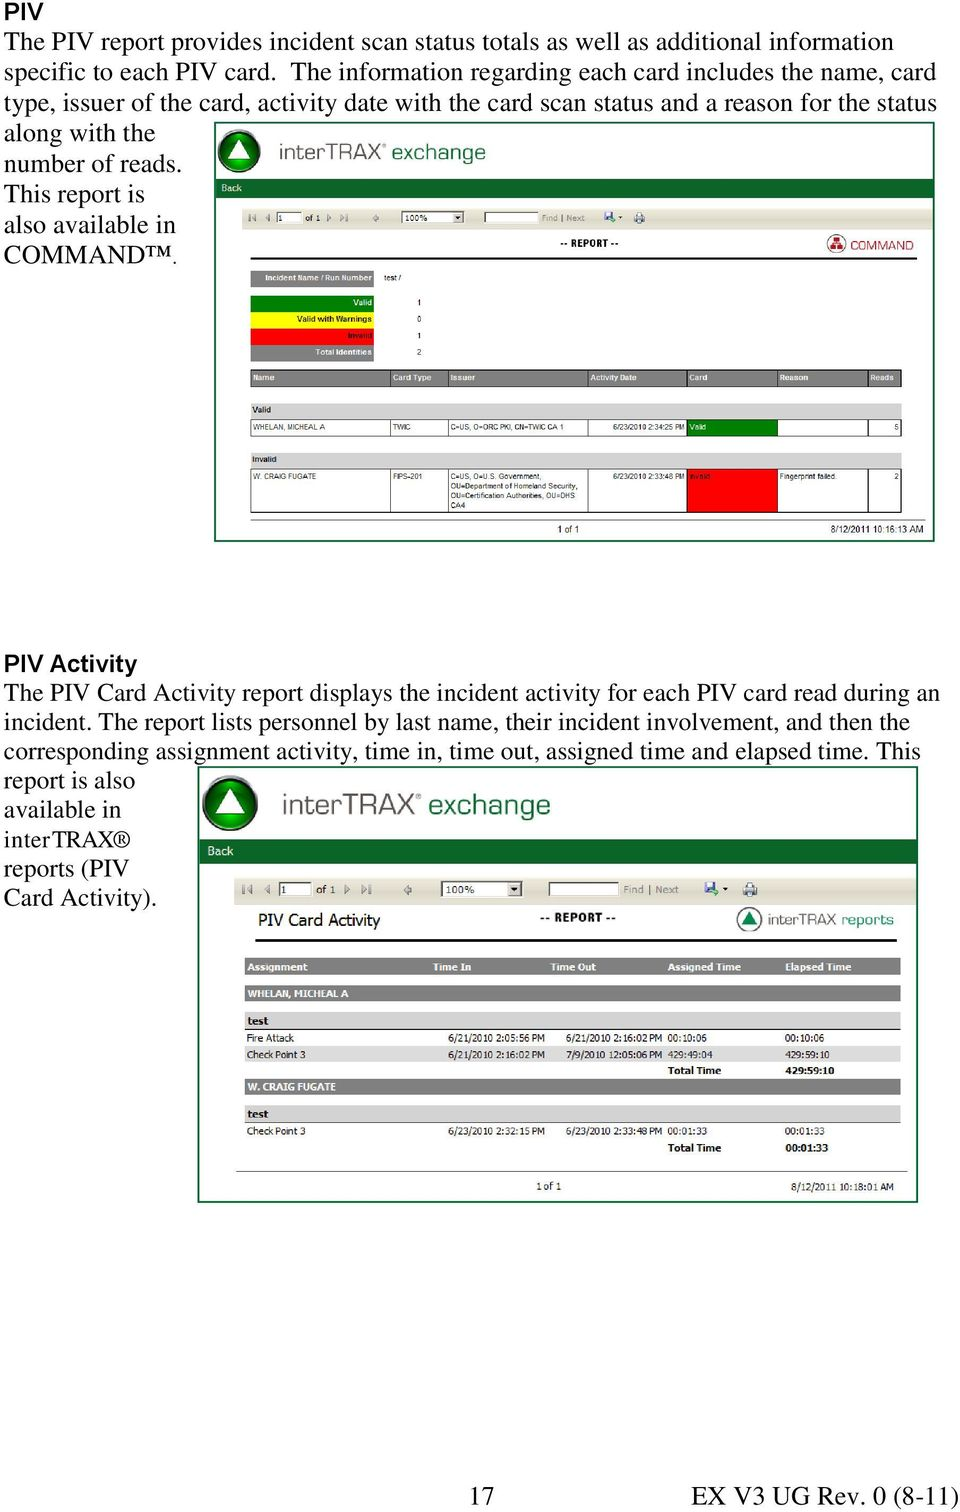 of reads. This report is also available in COMMAND. PIV Activity The PIV Card Activity report displays the incident activity for each PIV card read during an incident.